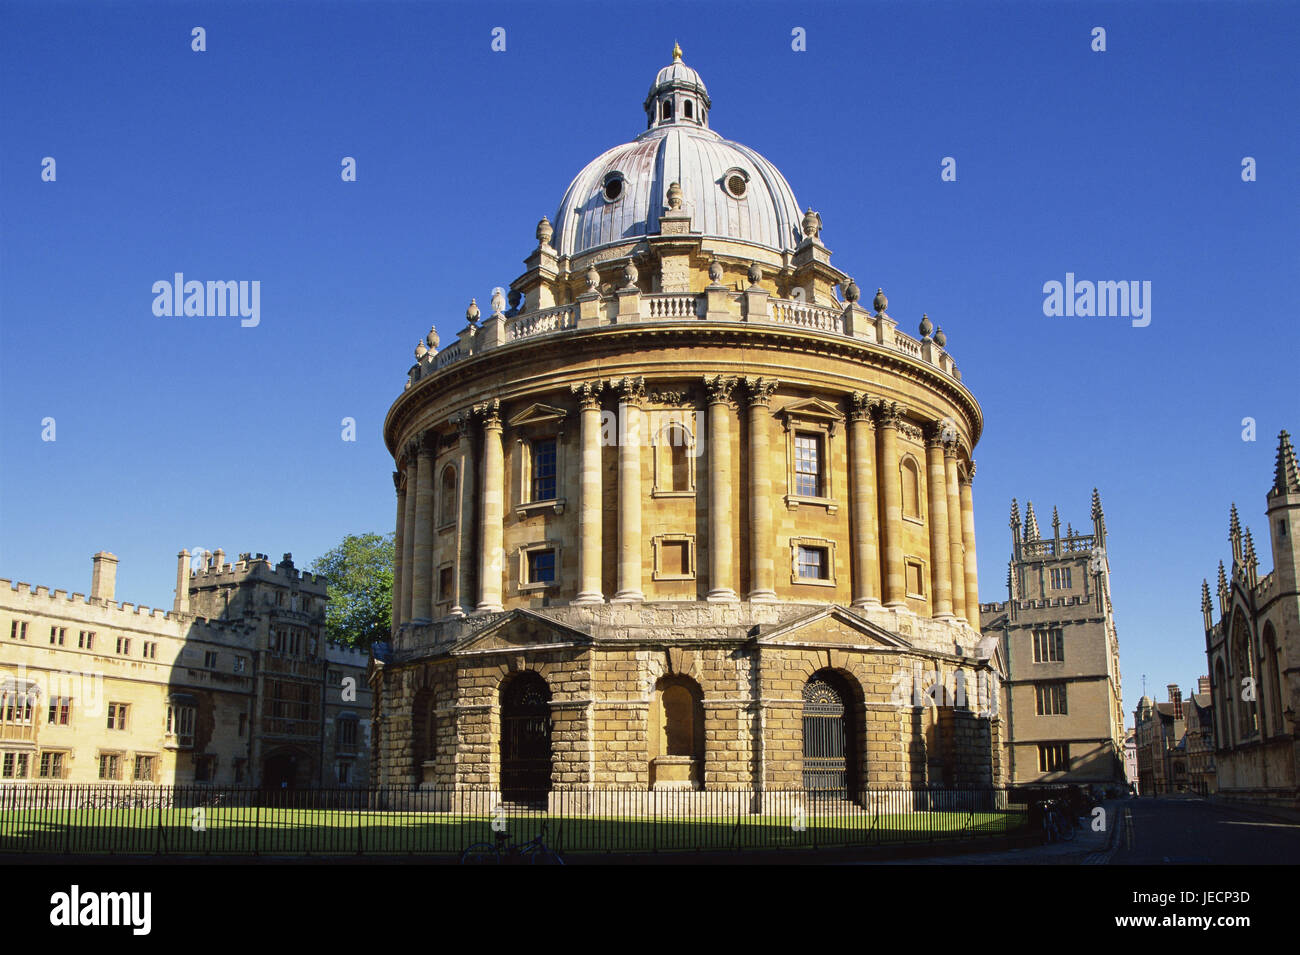 great britain england oxfordshire oxford radcliffe camera stock